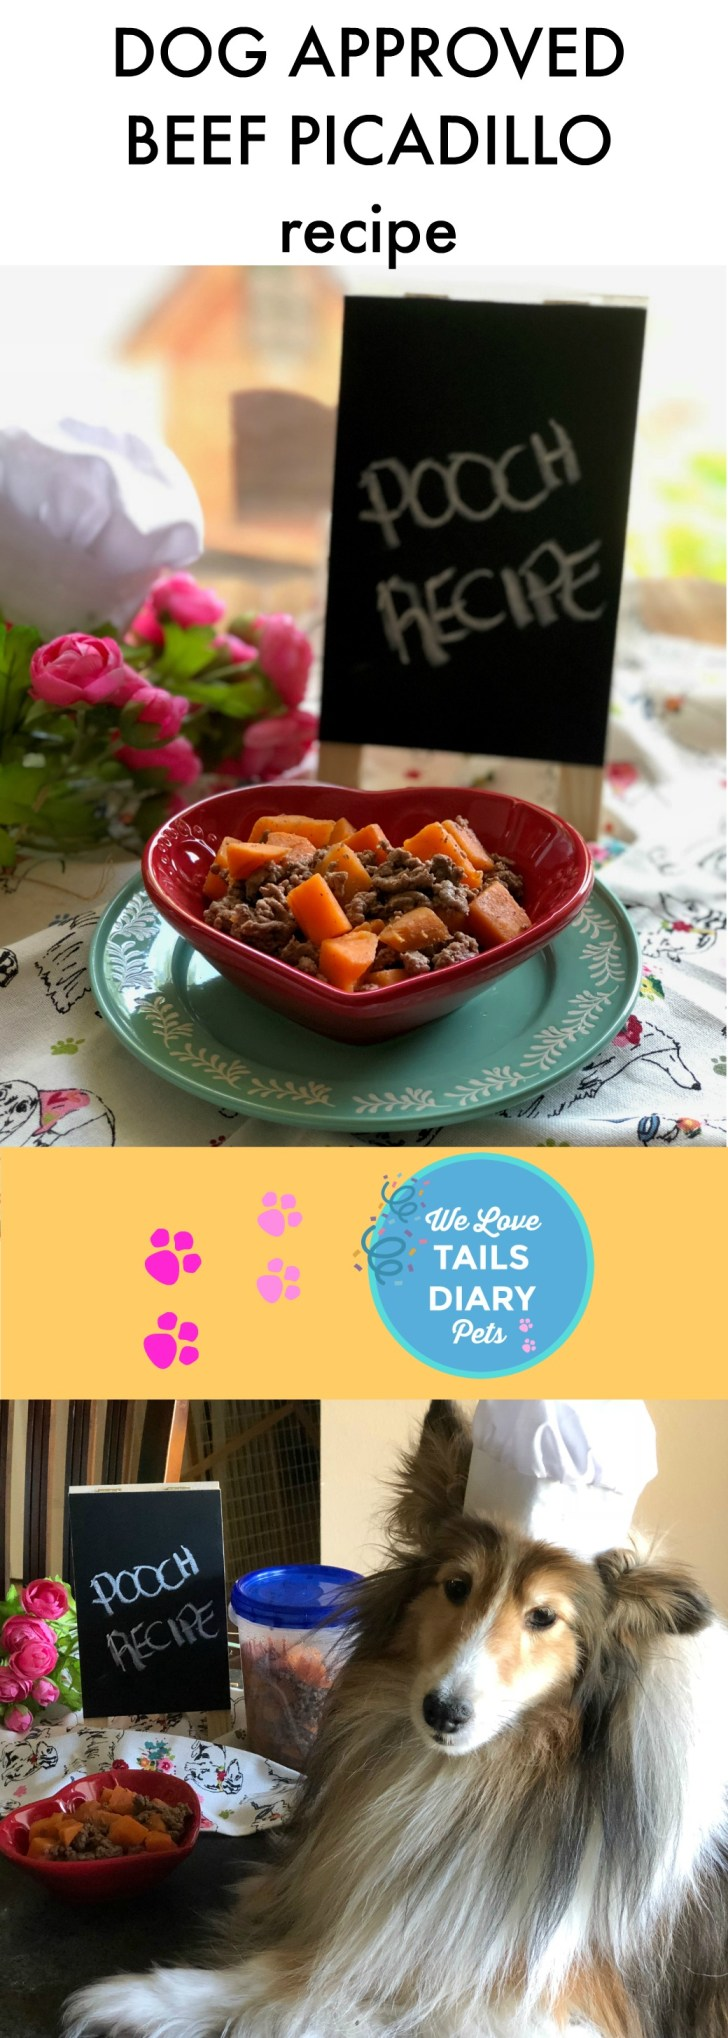 This dog approved beef picadillo is a simple recipe appropriate for dogs. It has only three ingredients: lean beef, fresh sweet potatoes and a small portion of corn oil. It is easy to make and it is freezer friendly